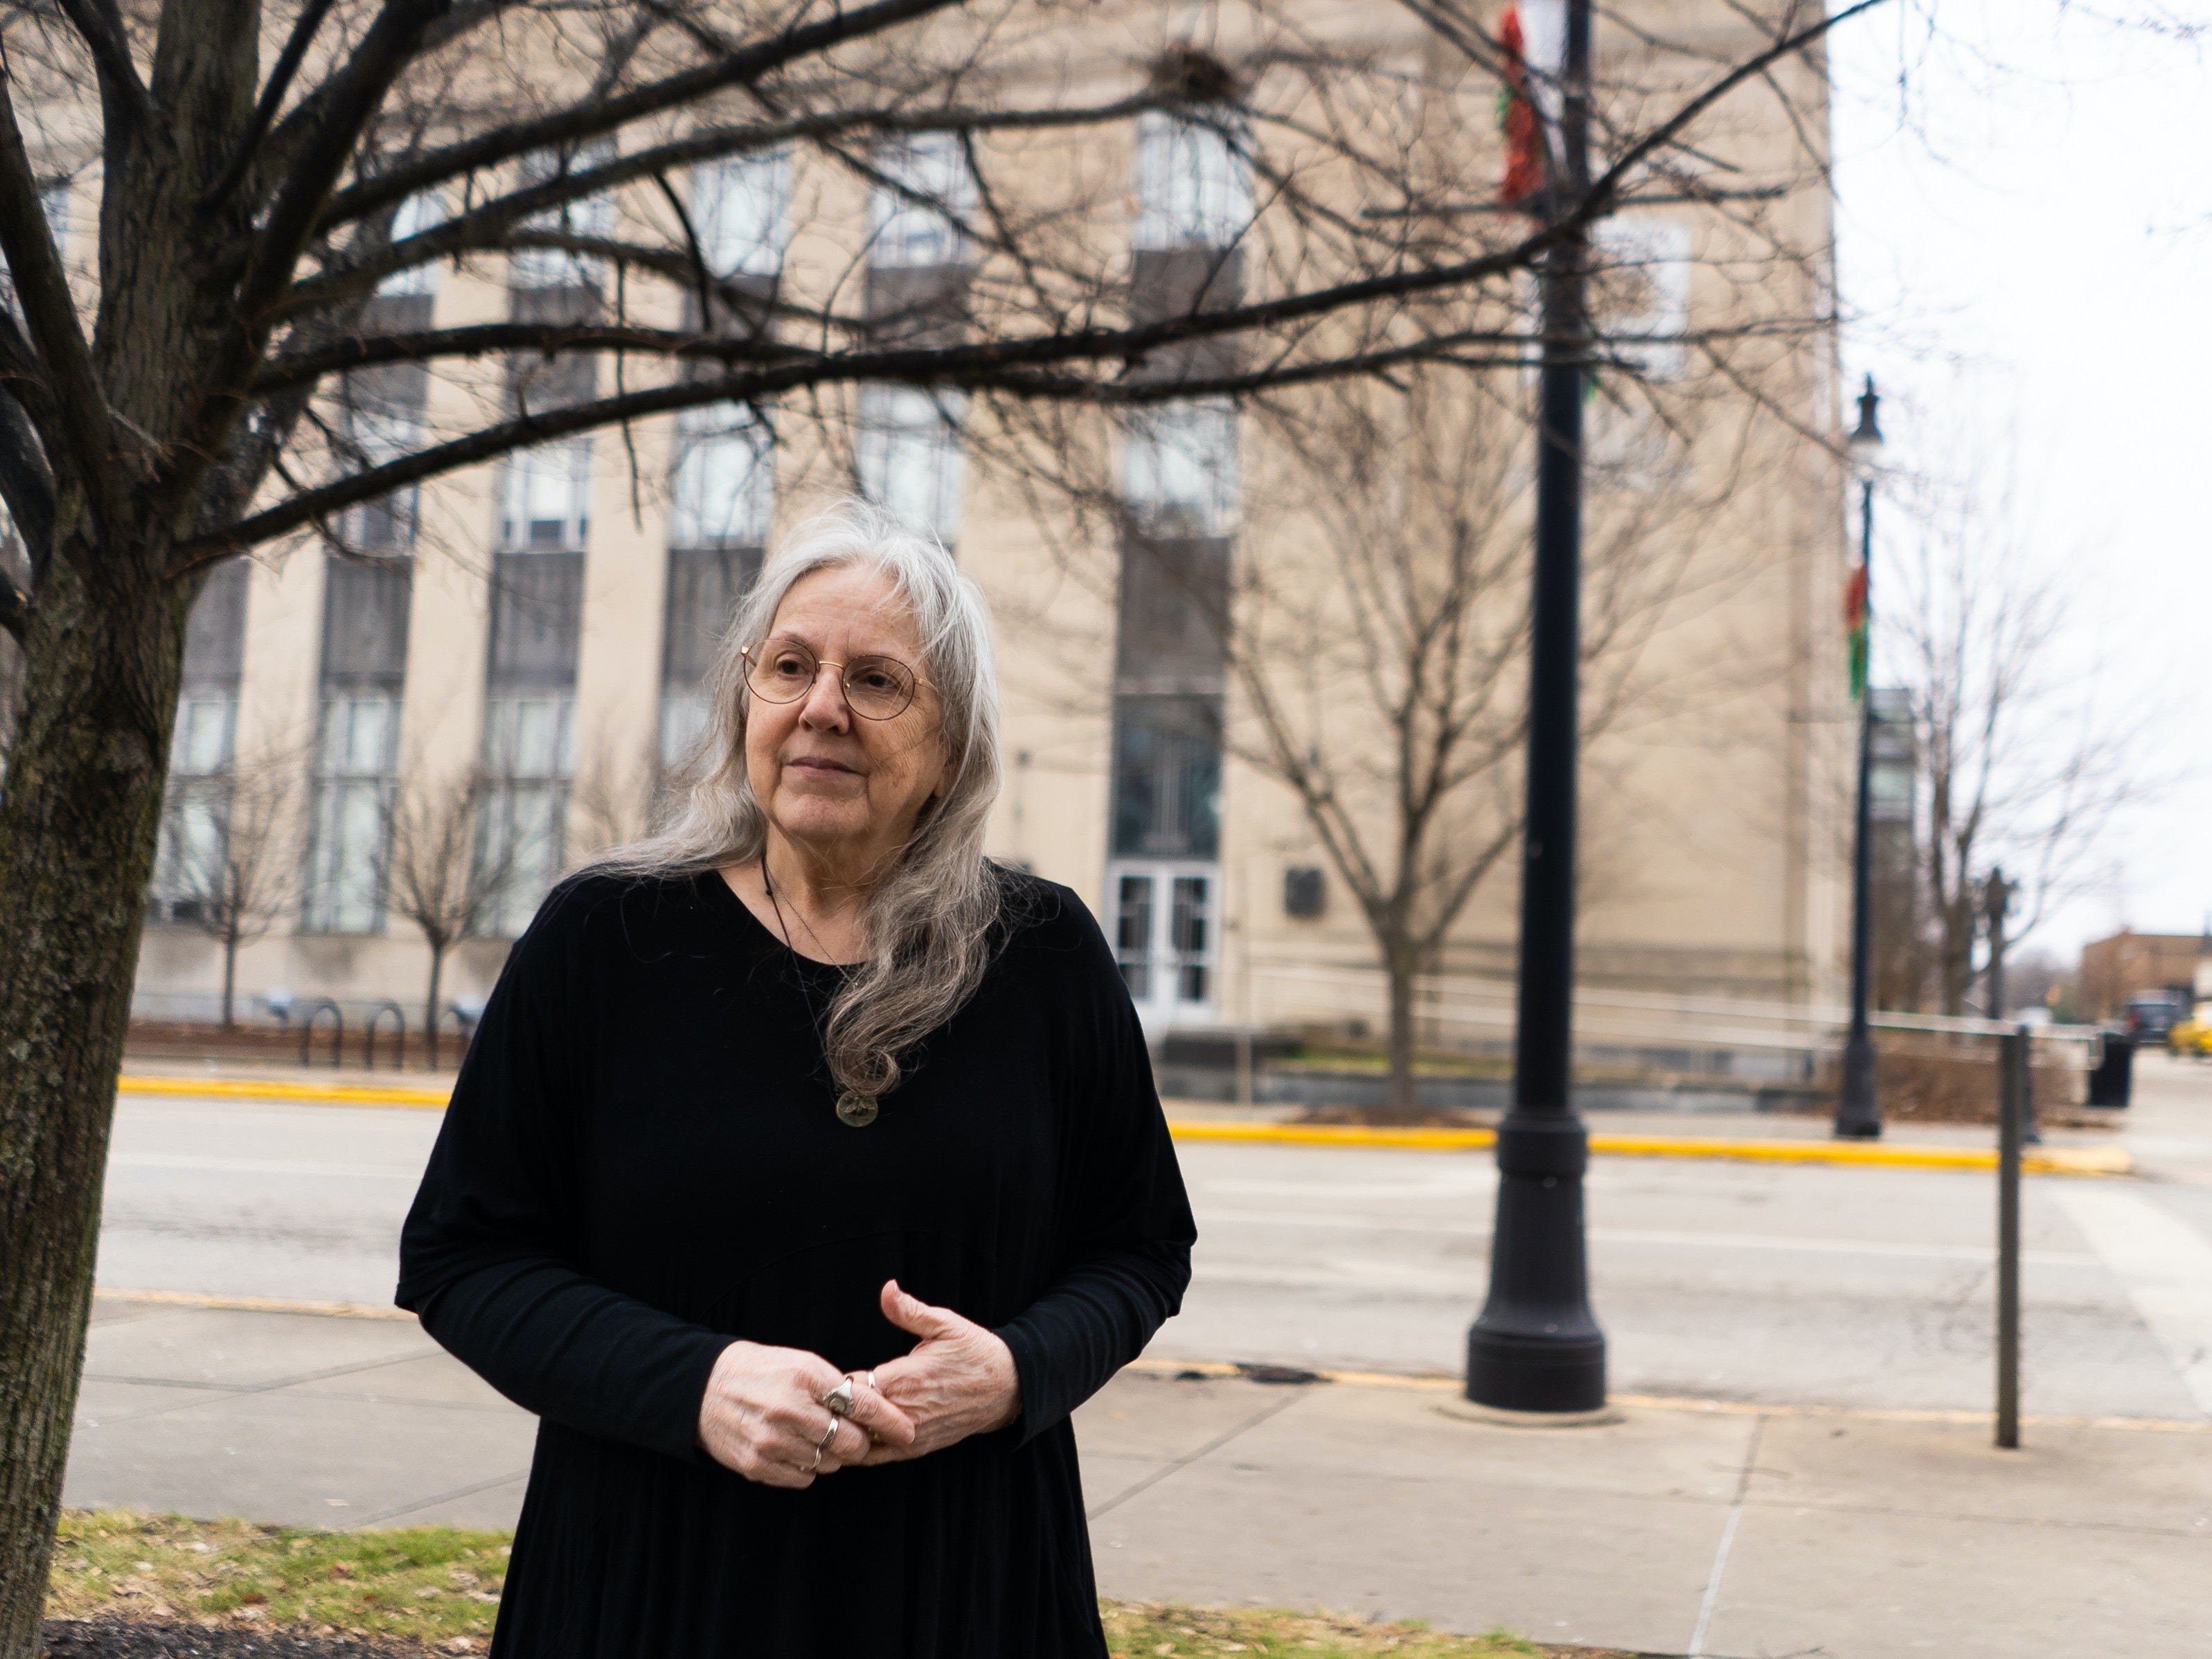 Zann Carter, a Terre Haute resident, is a leader in the community when it comes to advocacy and activism against the death penalty. Here, she is photographed in front of the original Federal Building, which was turned over to Indiana State University in 2007. in Terre Haute, Ind., on Friday, Dec. 27, 2019. The corner behind Carter was the location of much of the protests and demonstrations held against the death penalty. The United States Penitentiary, Terre Haute, in Terre Haute, Ind., was designated on July 19, 1993, by the federal government as the location at which federal death sentences would be carried out on. As of Friday, Dec. 27, 2019, three executions have taken place, with several currently scheduled. Photo by Lucas Carter / www.lucascarter.com.